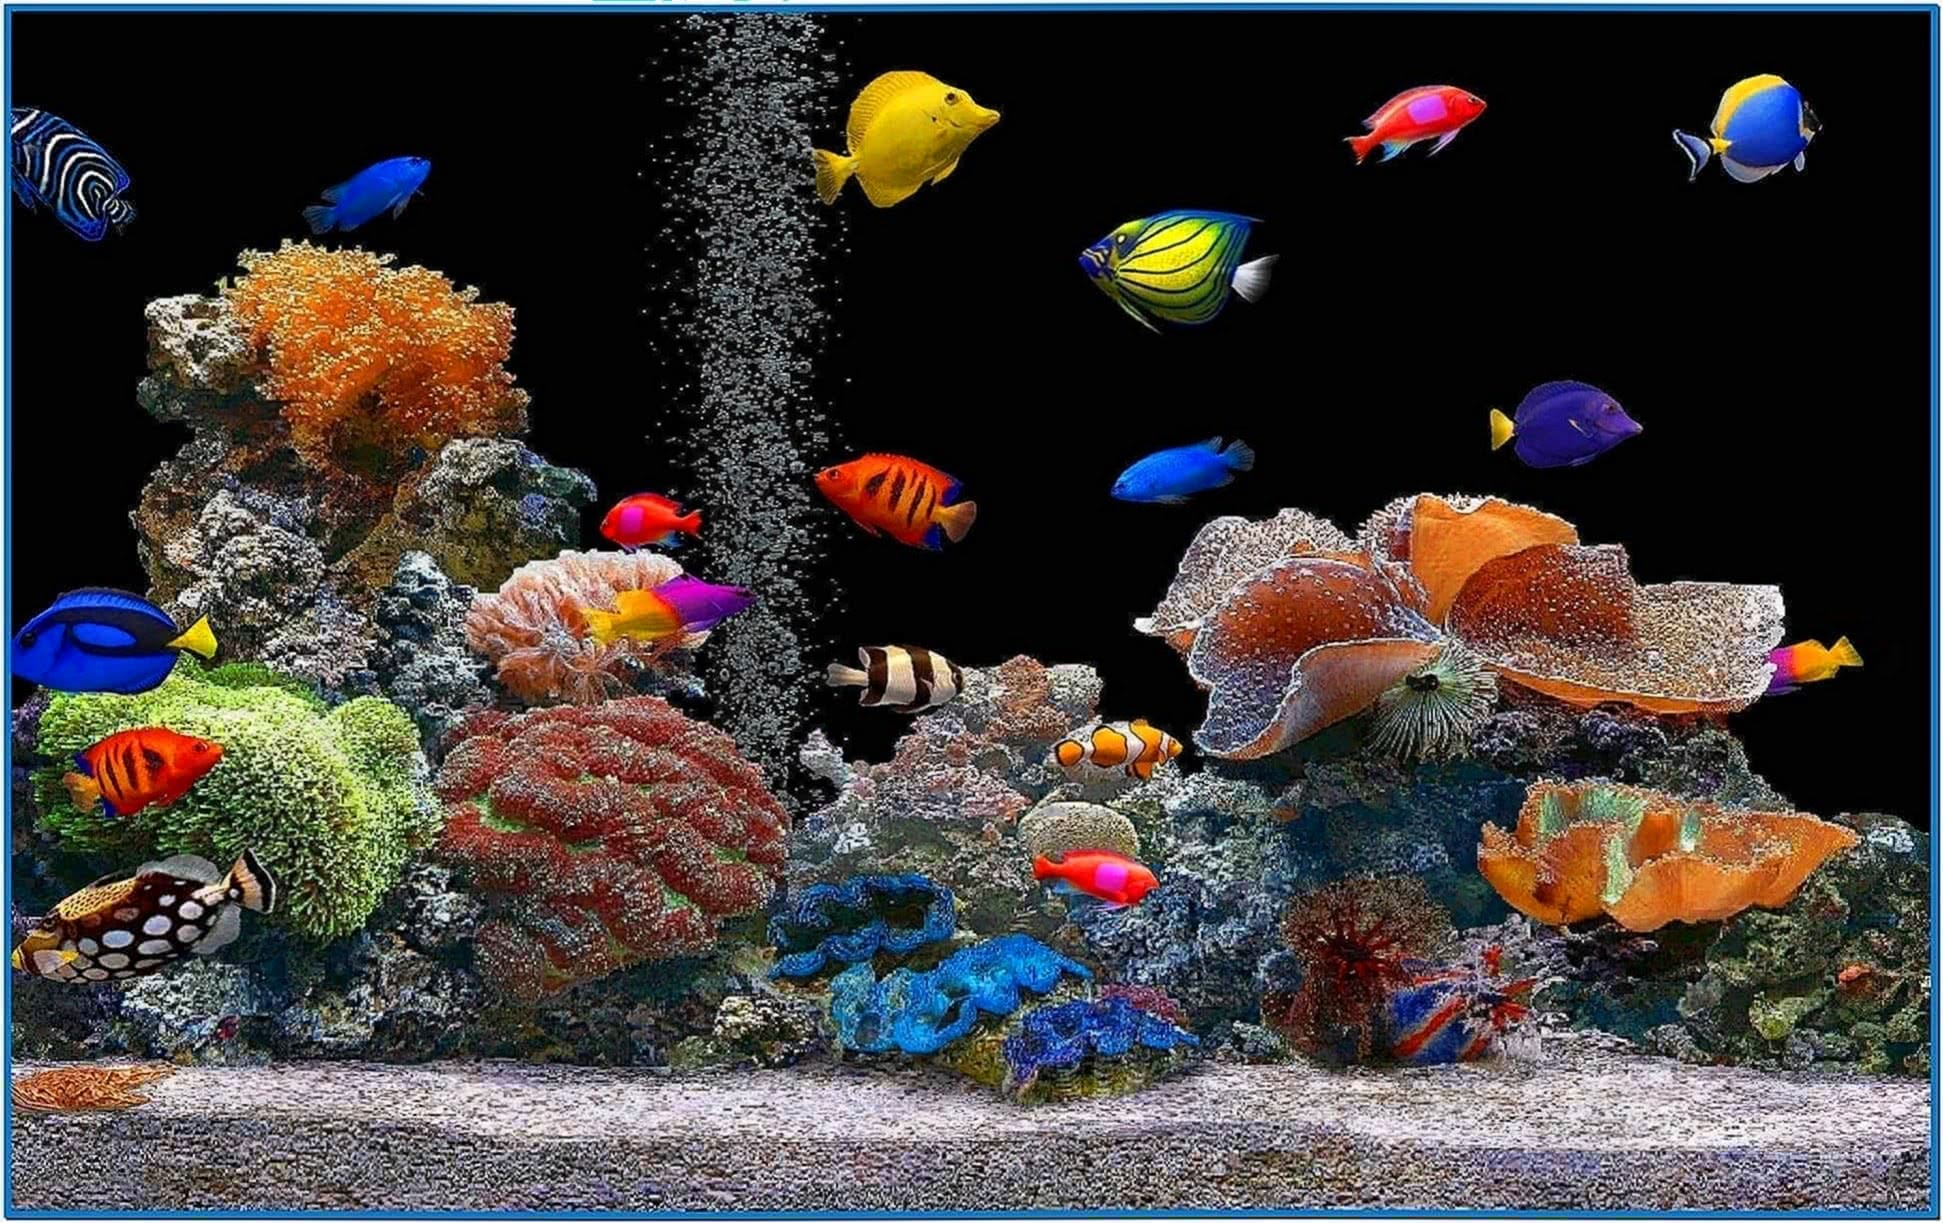 Marine Aquarium Screensaver HD